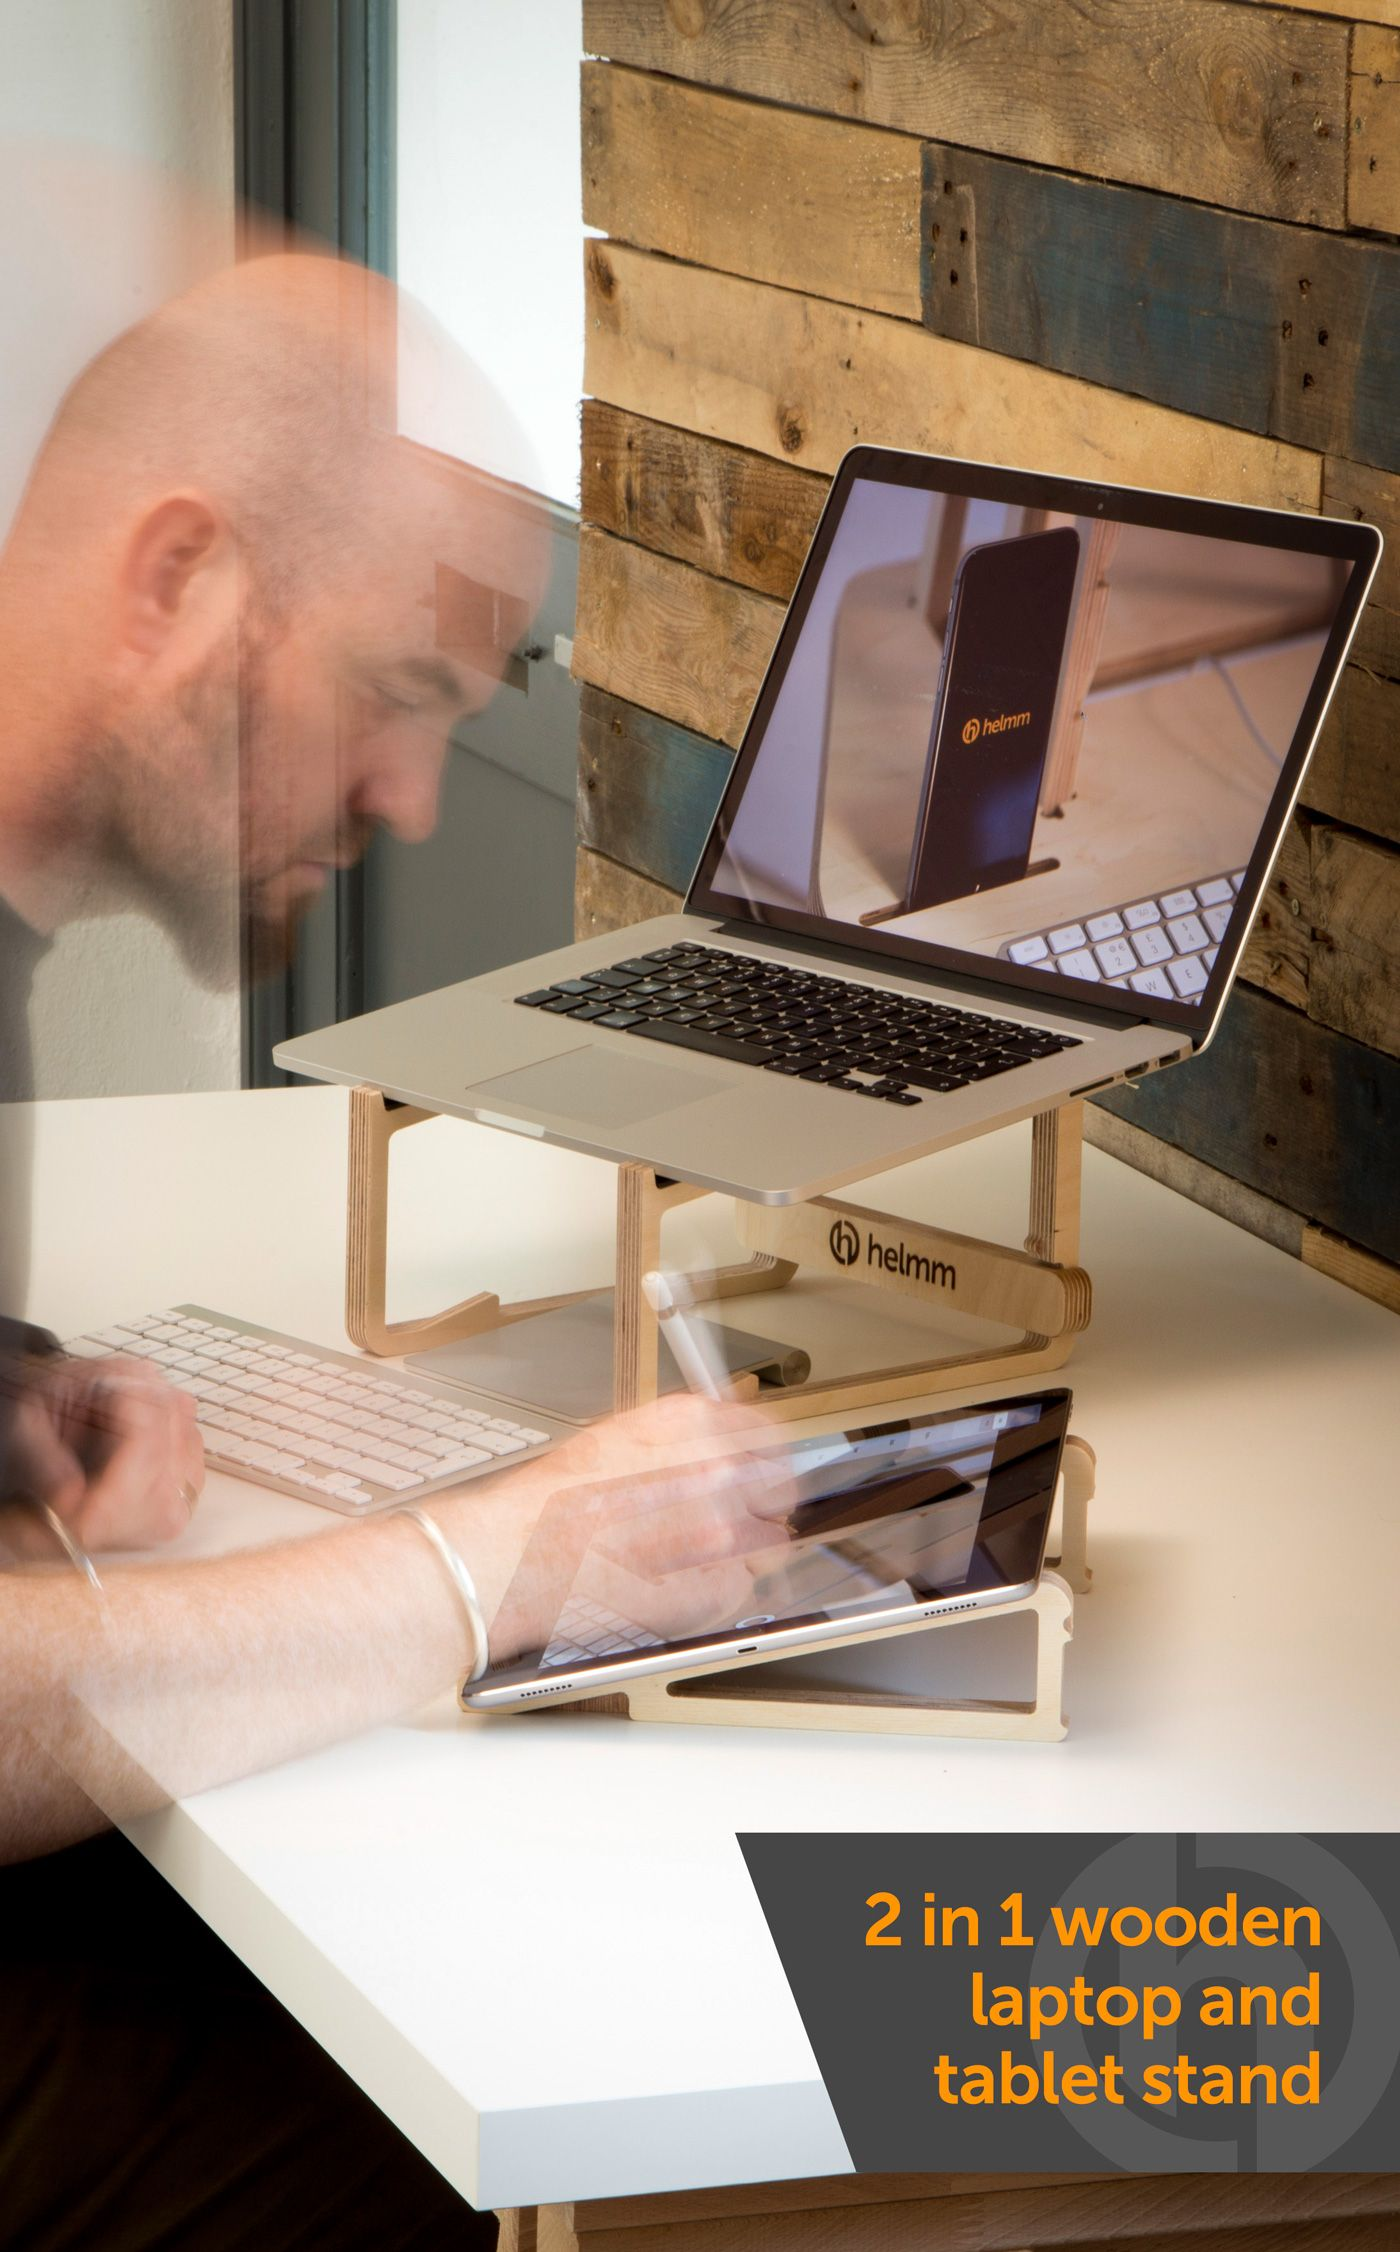 Lastand Laptop stand, Wooden laptop stand, Lap desk